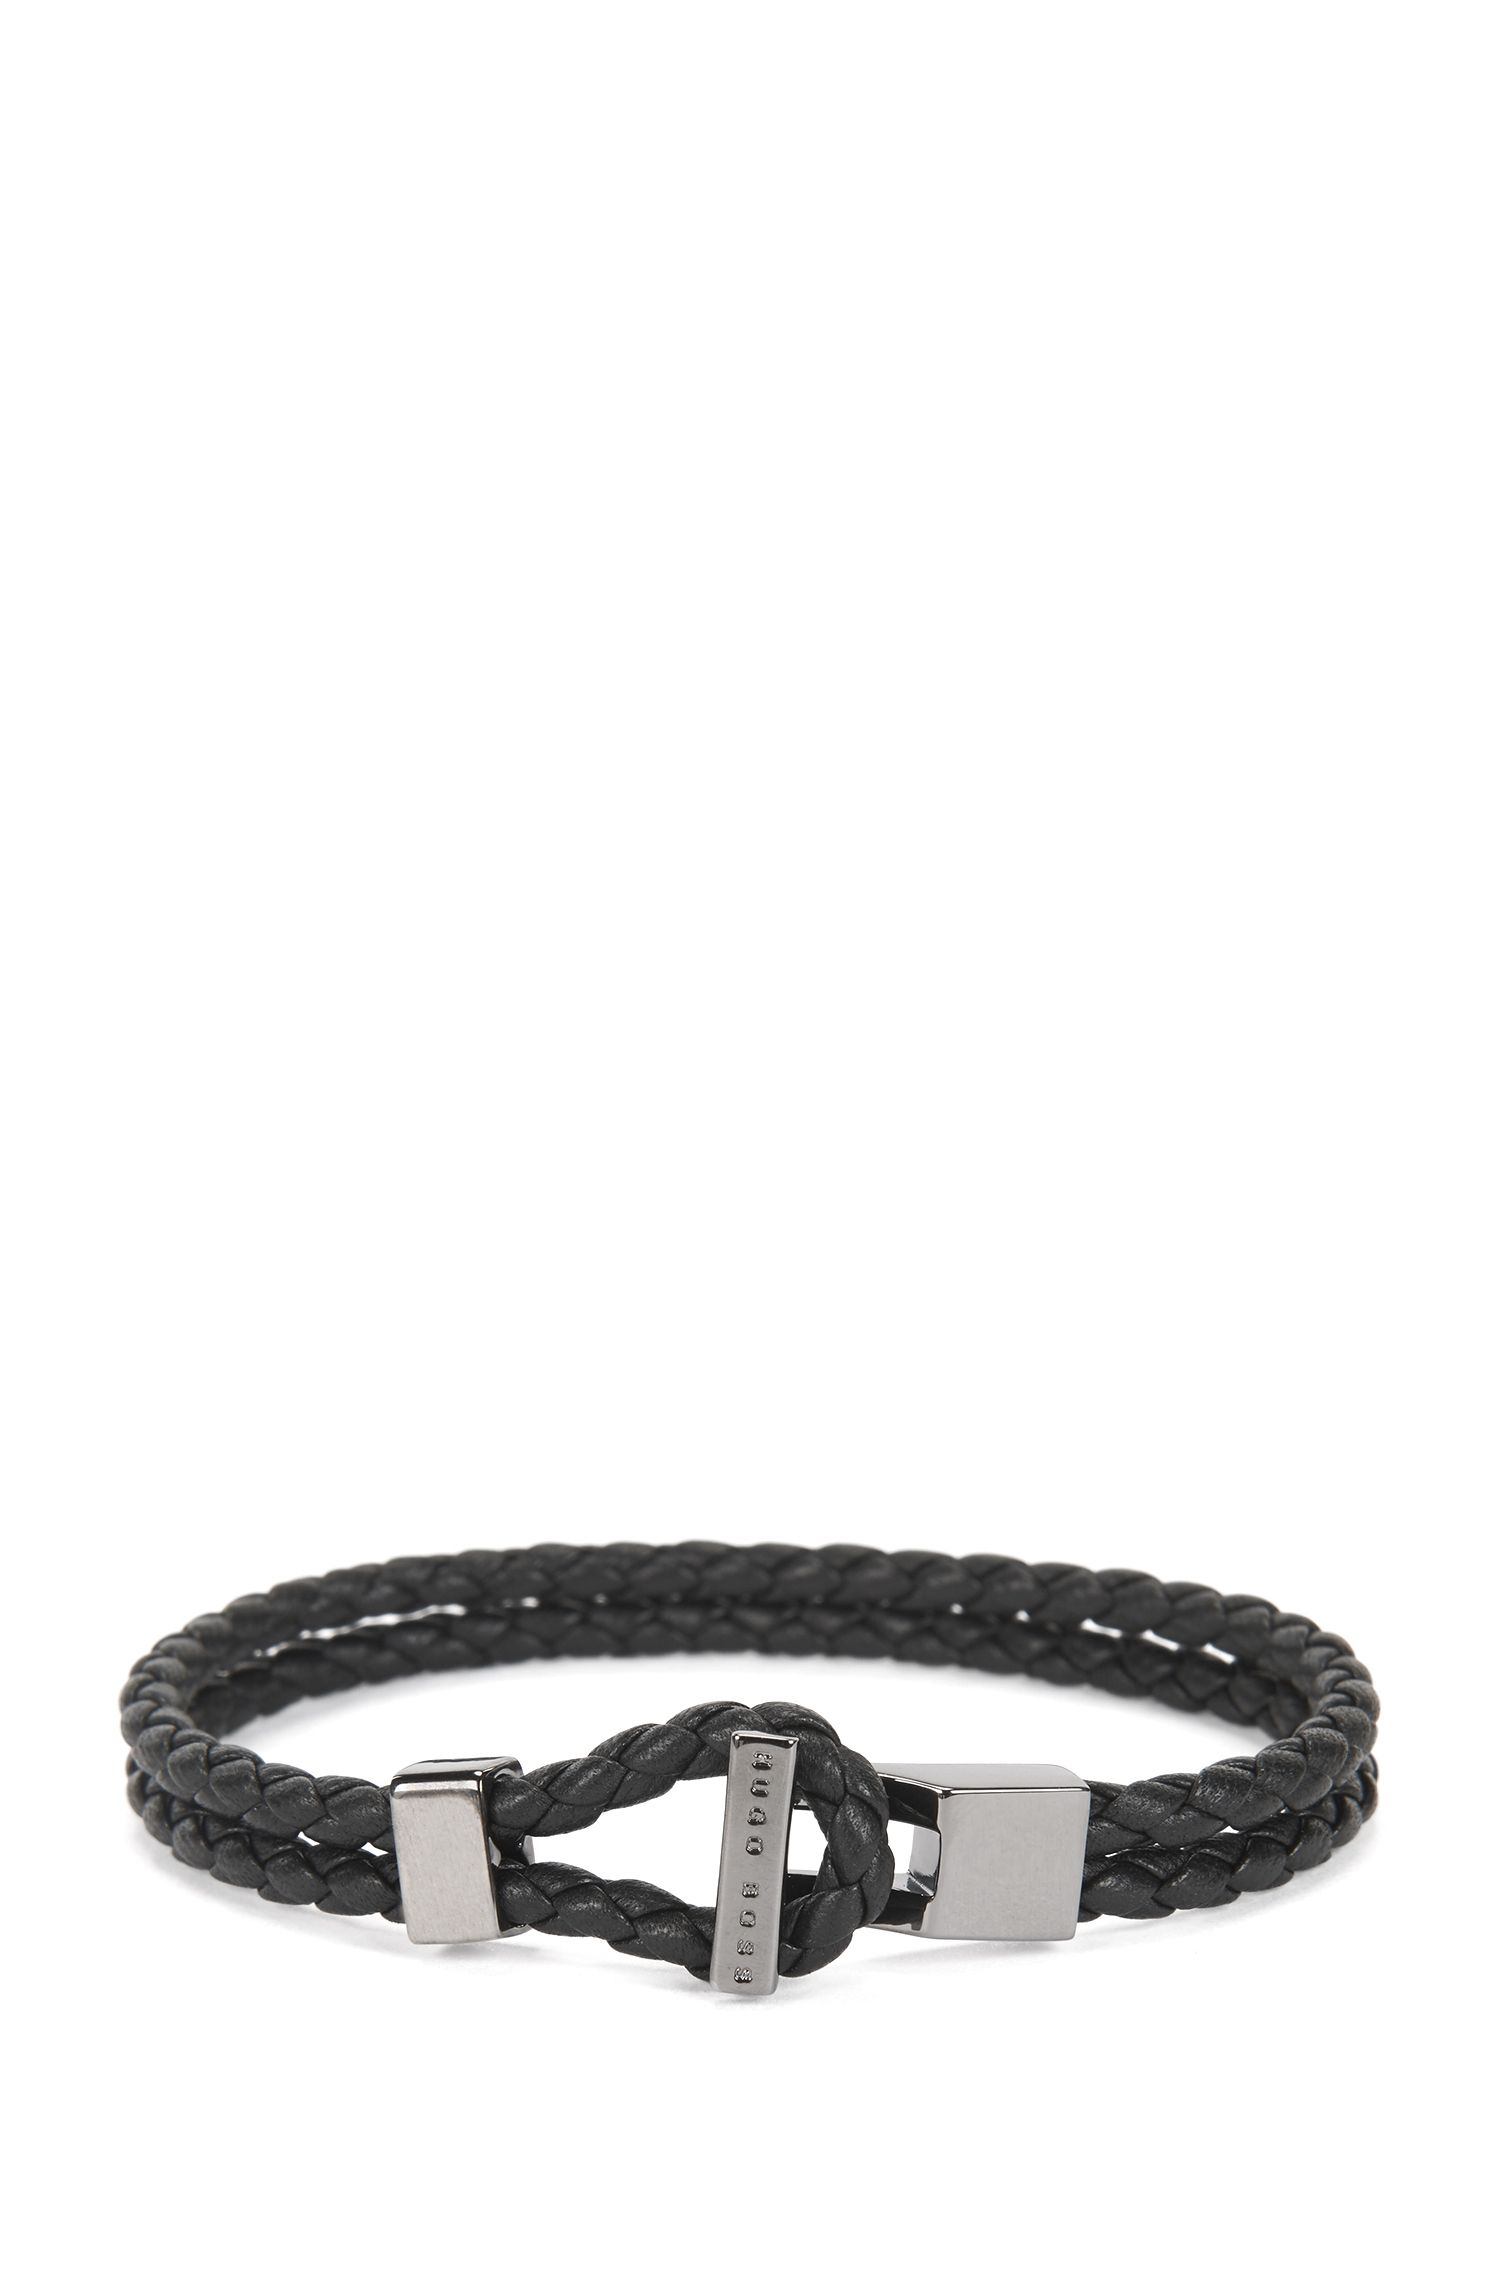 Leather bracelet with gunmetal hardware